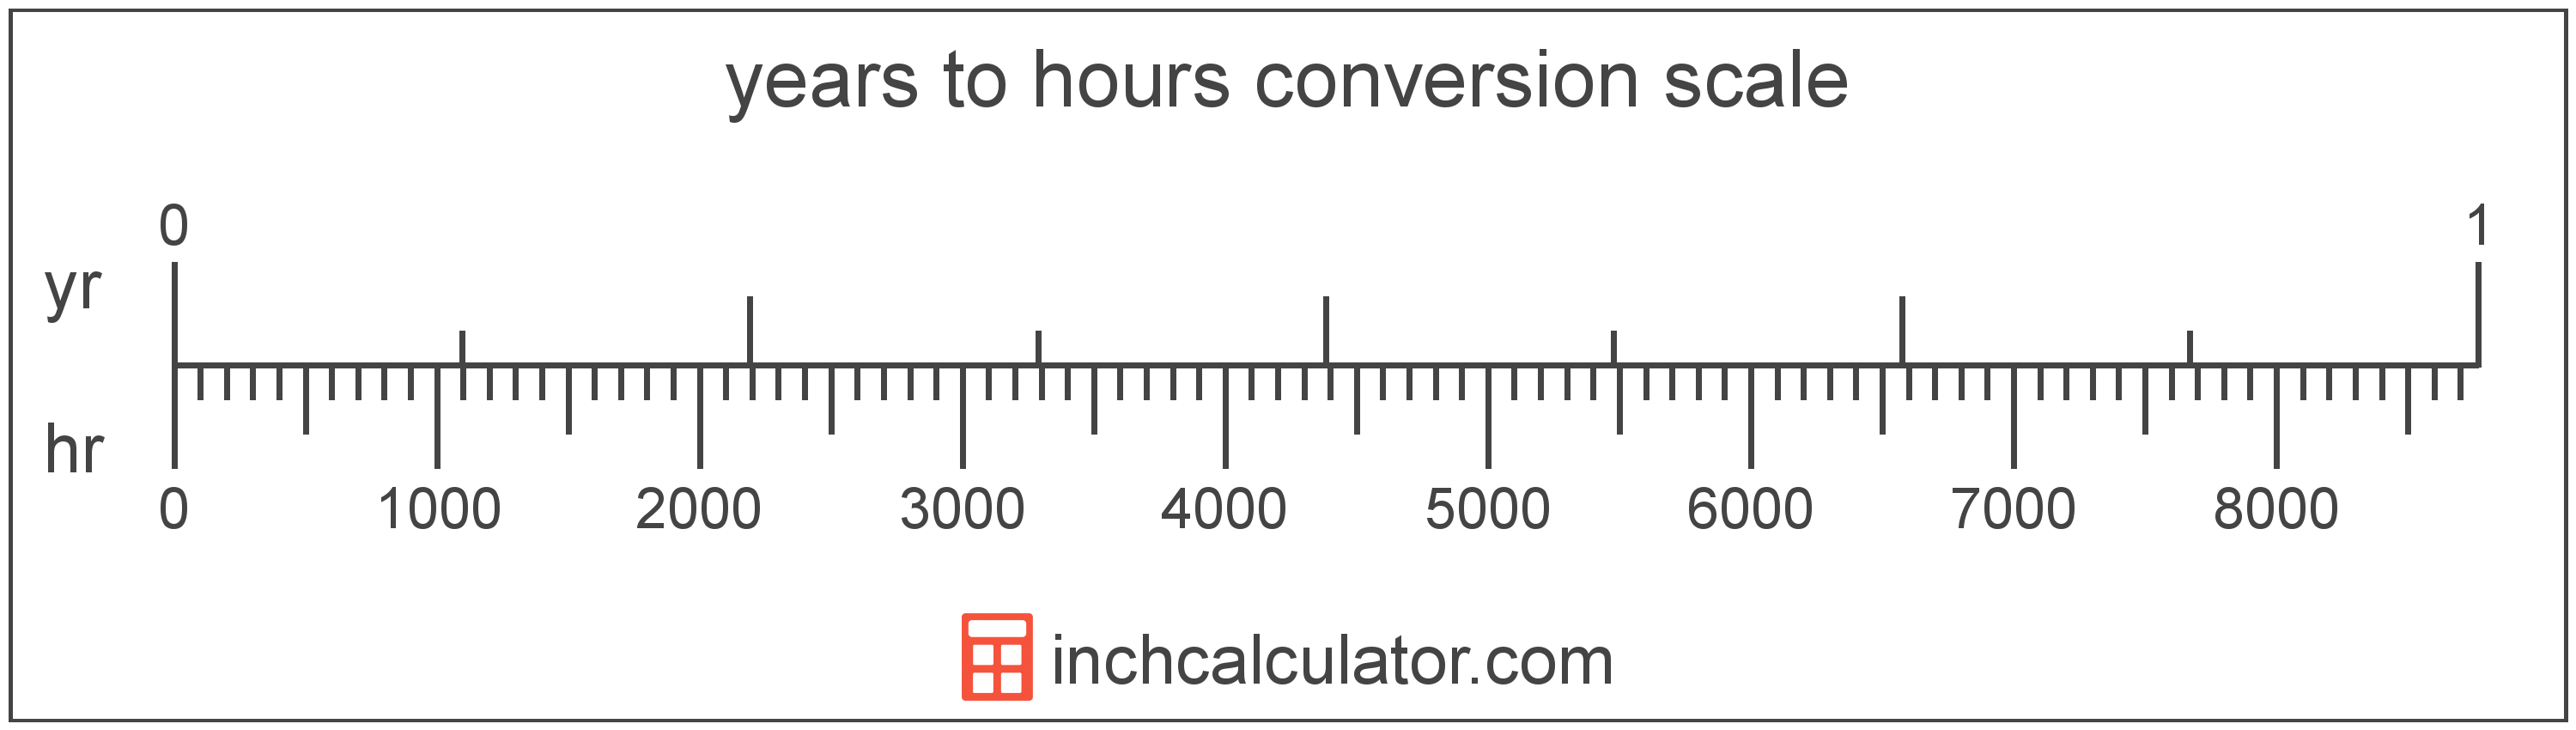 conversion scale showing hours and equivalent years time values